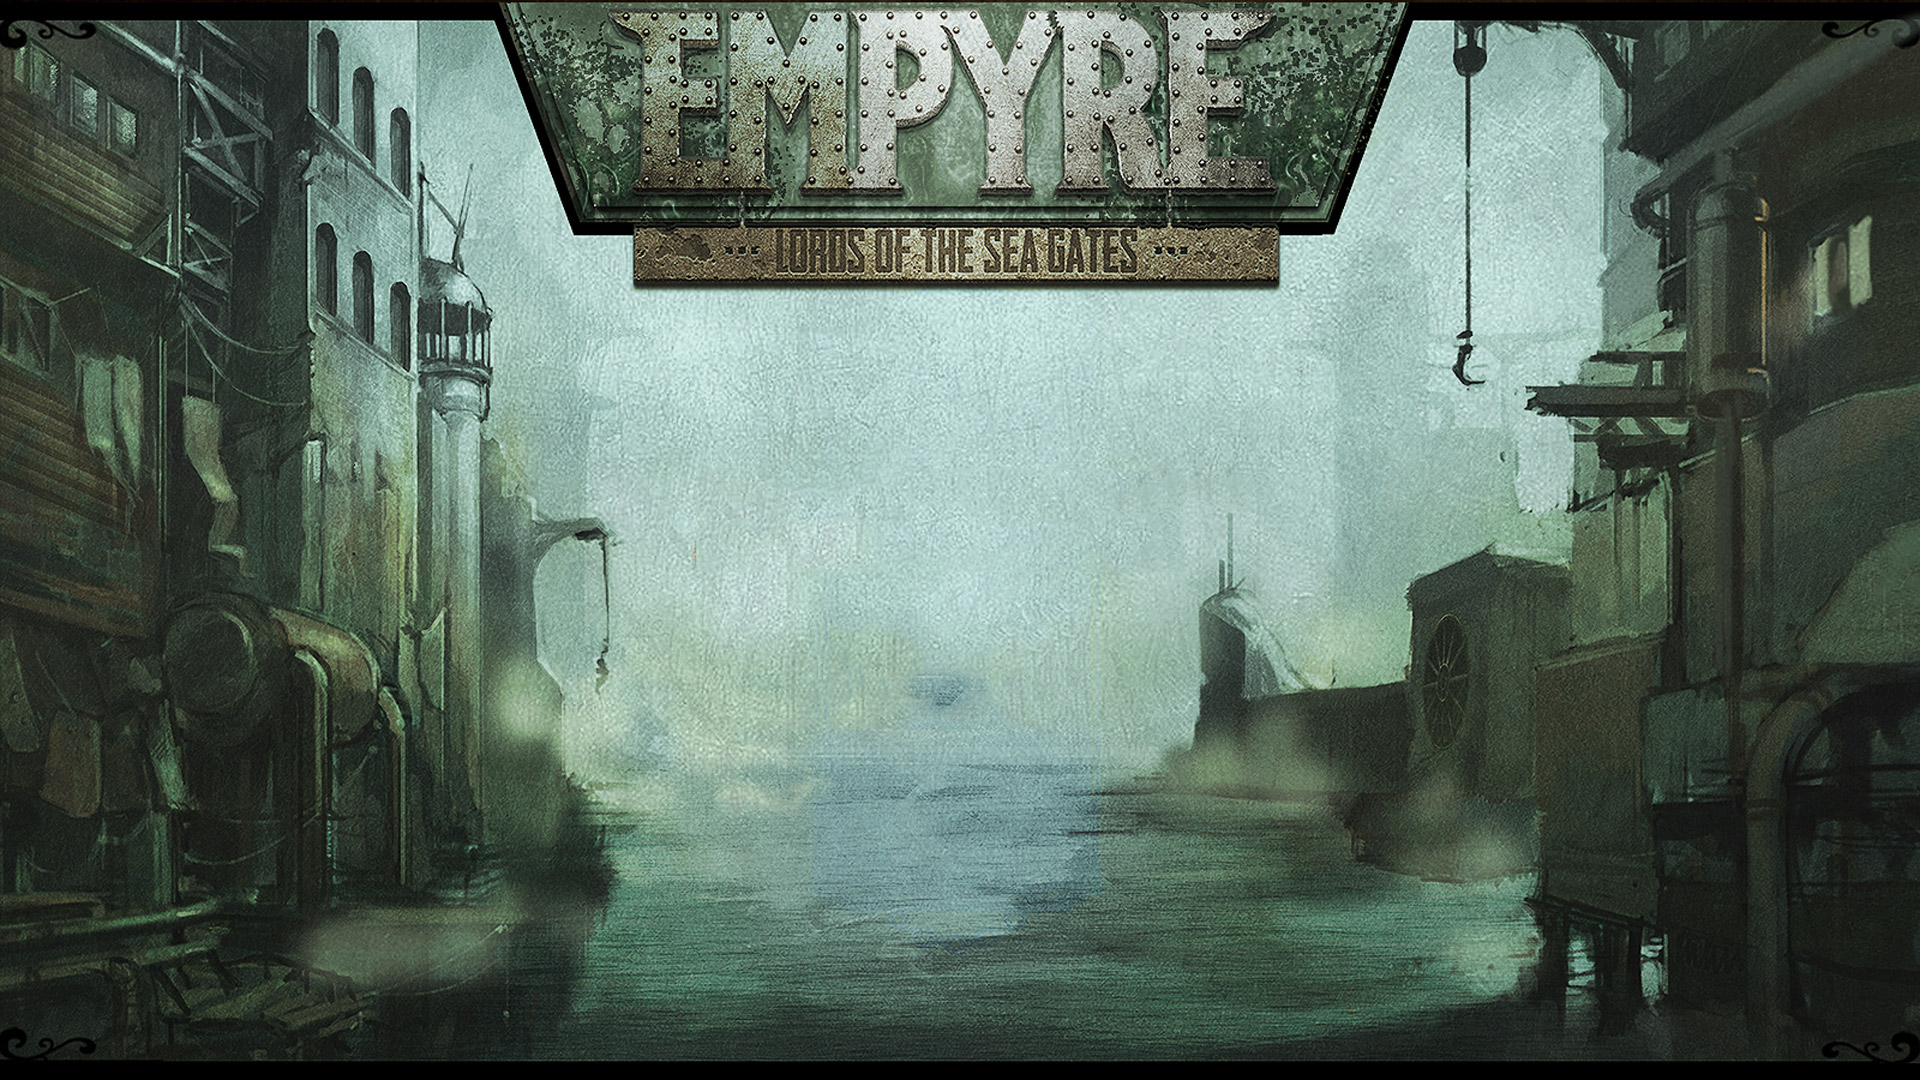 Free Empyre: Lords Of The Sea Gates Wallpaper in 1920x1080